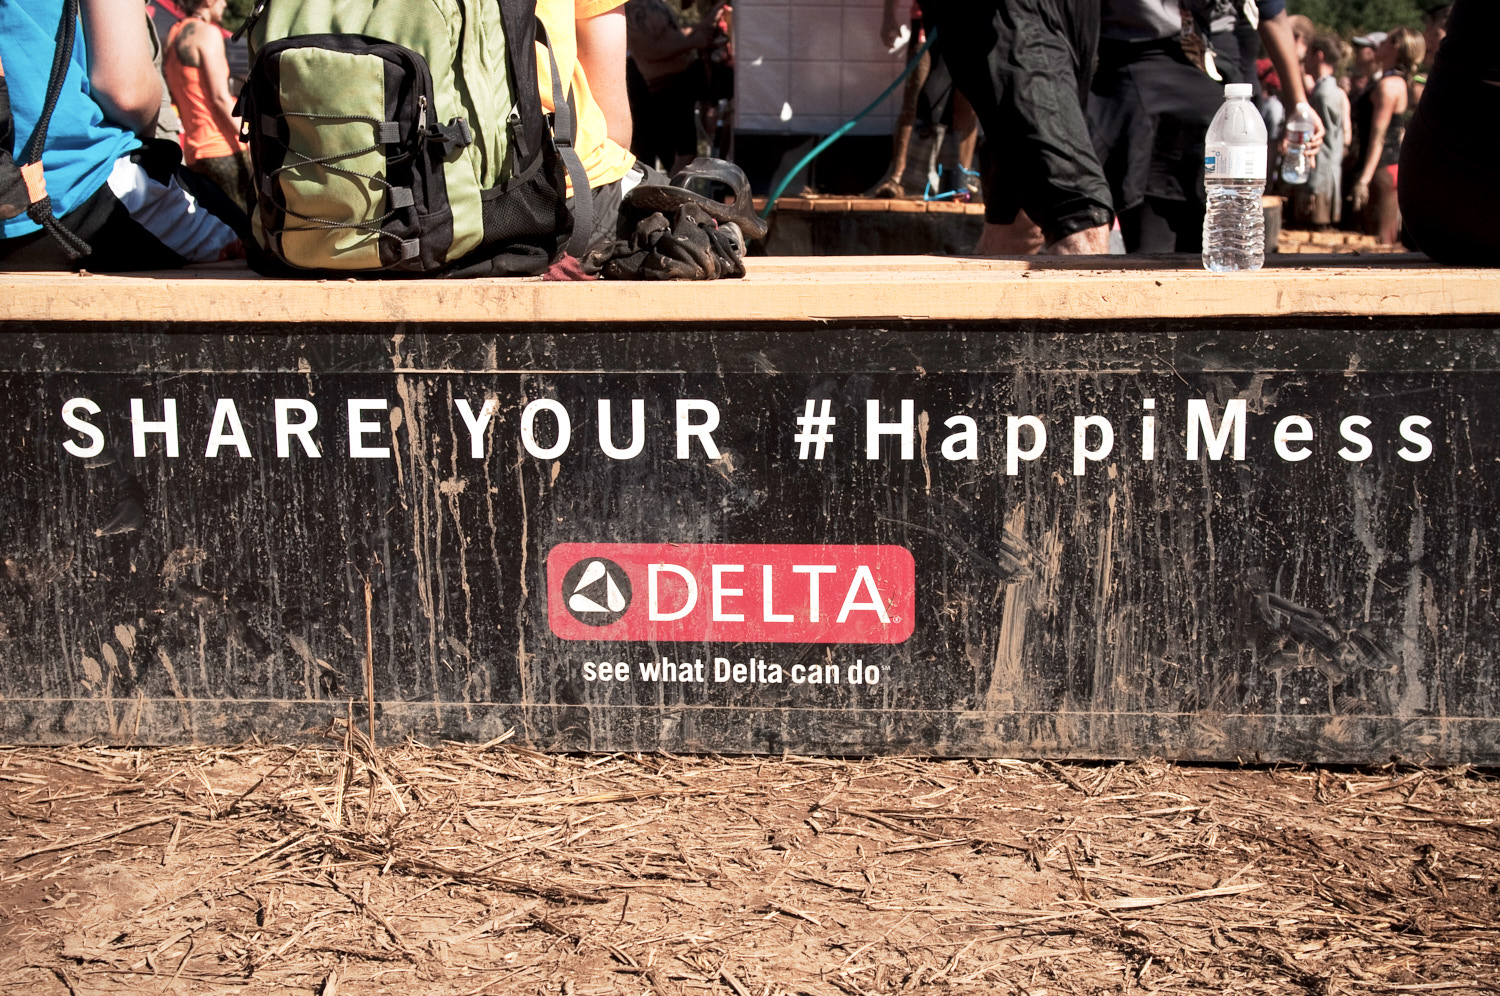 Delta - Warrior Dash 2016 sponsor